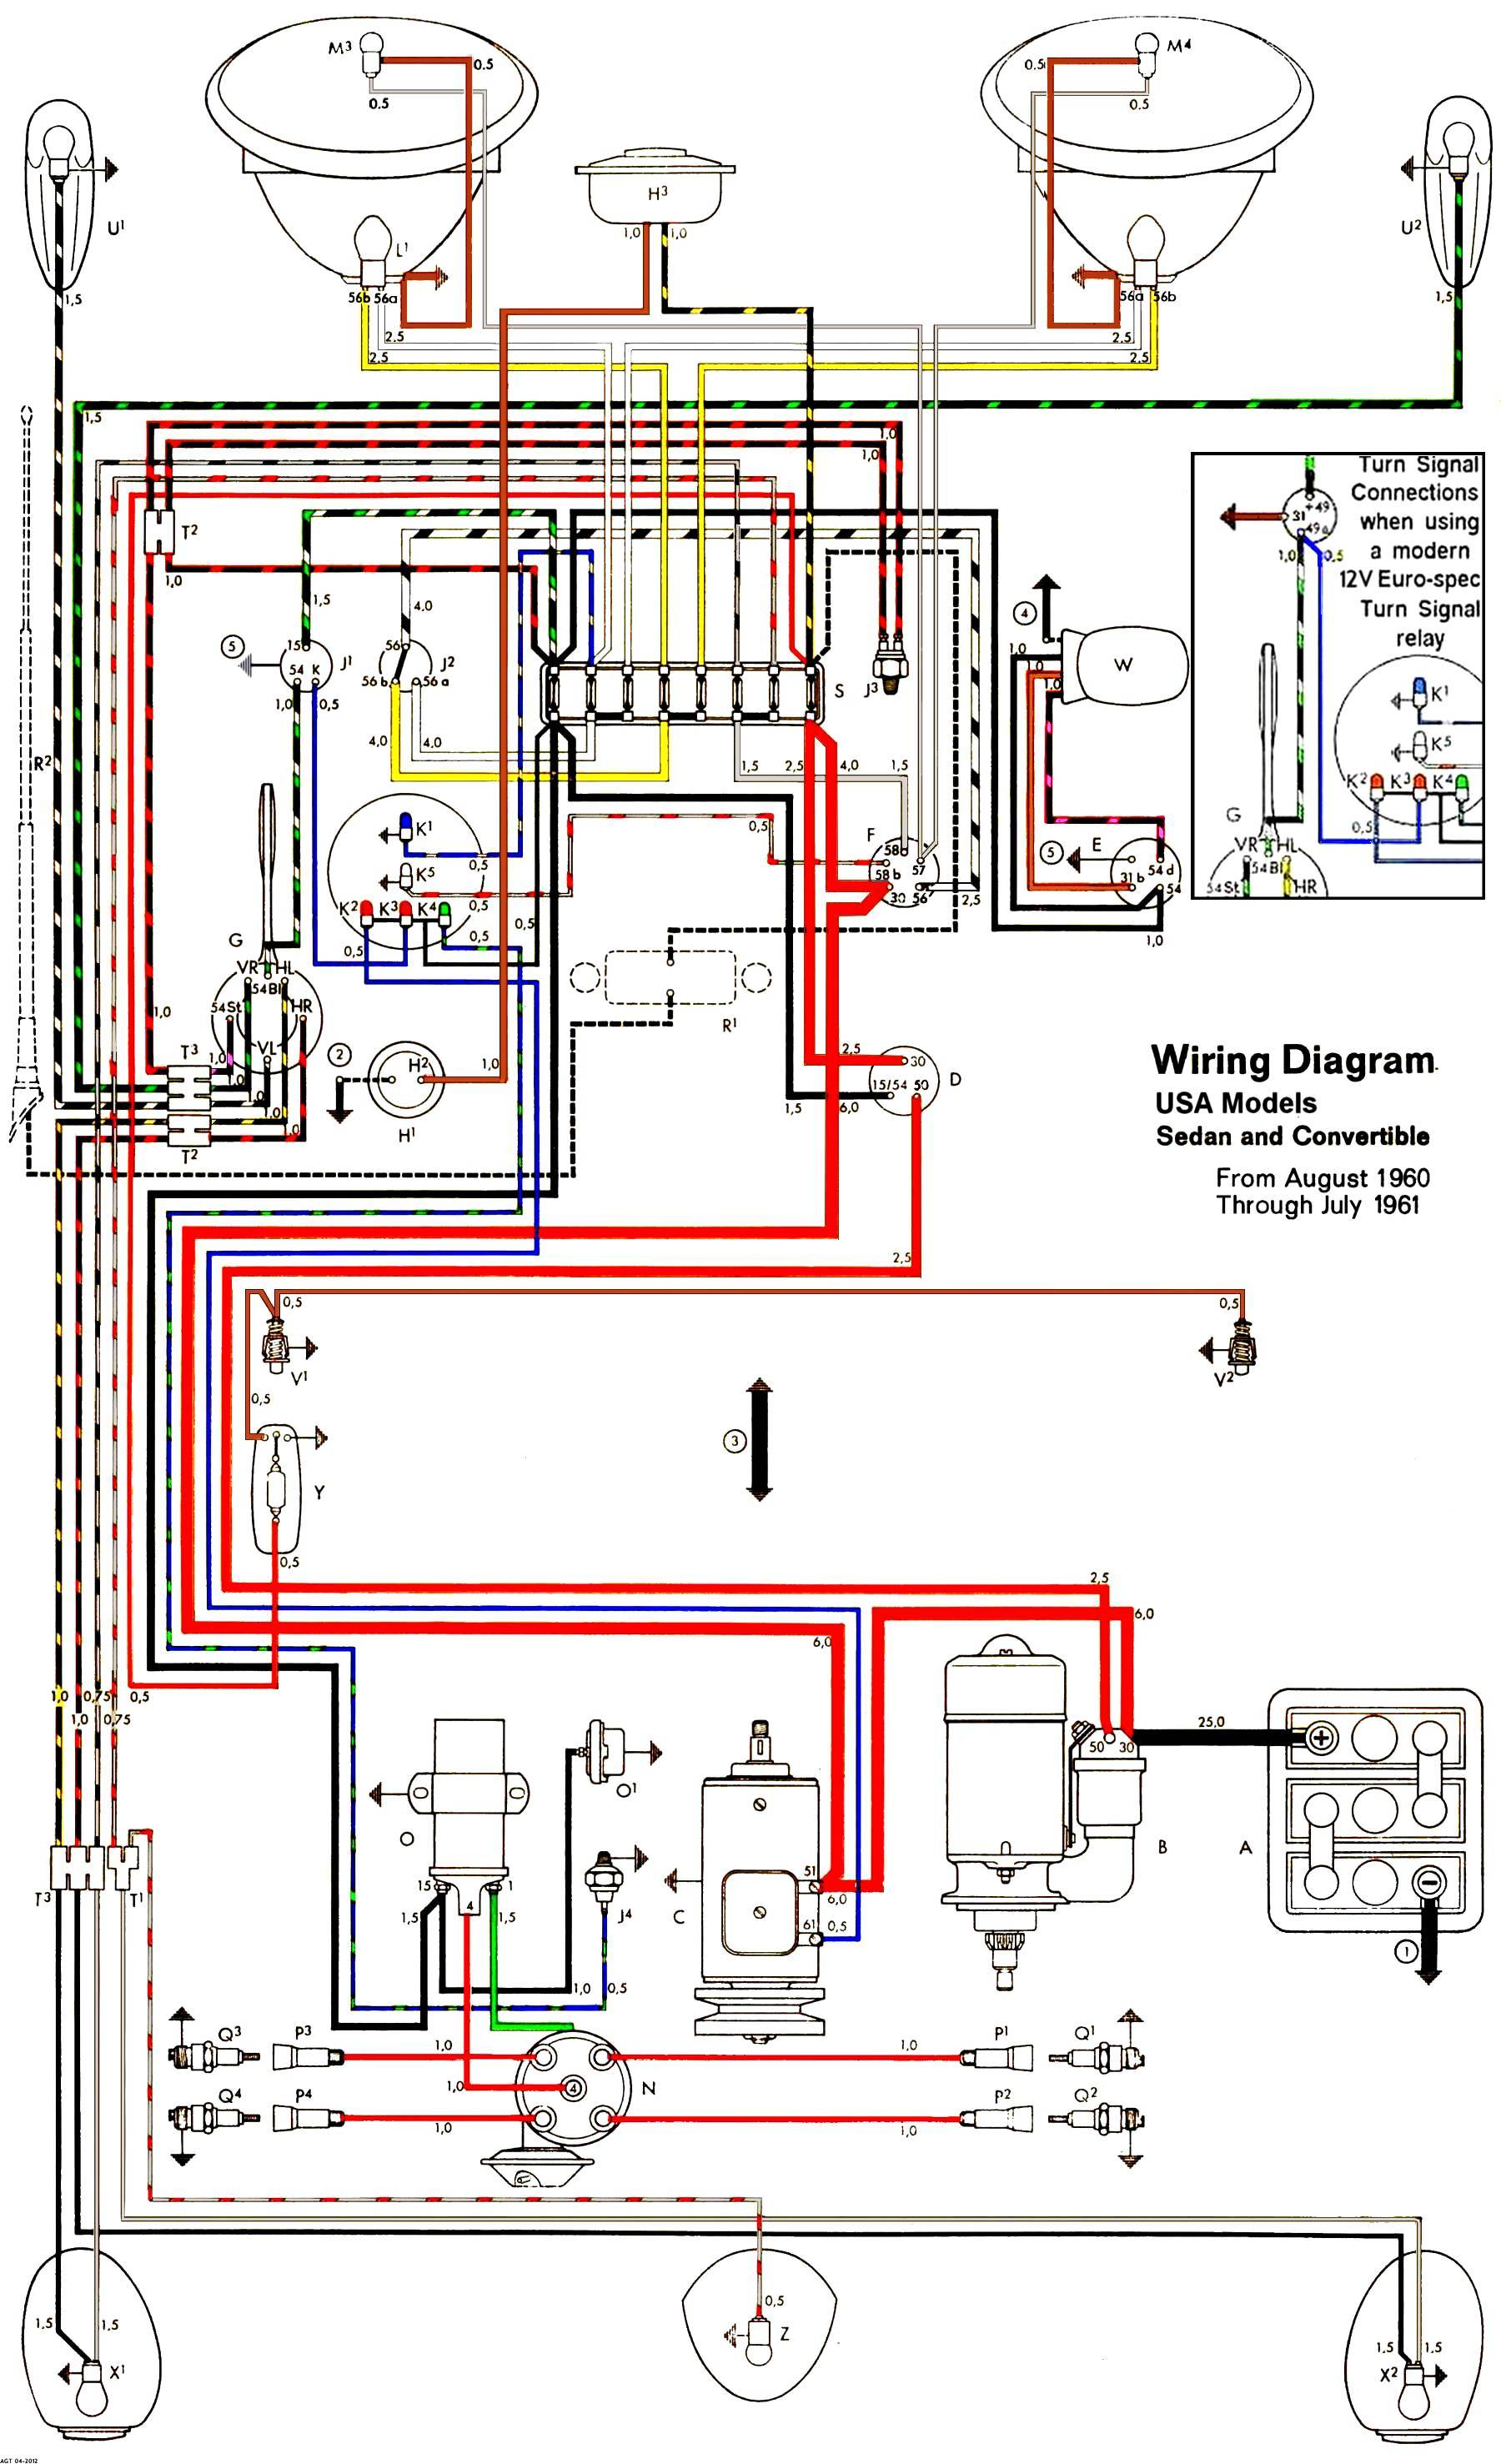 thesamba com type 1 wiring diagrams 1961 usa